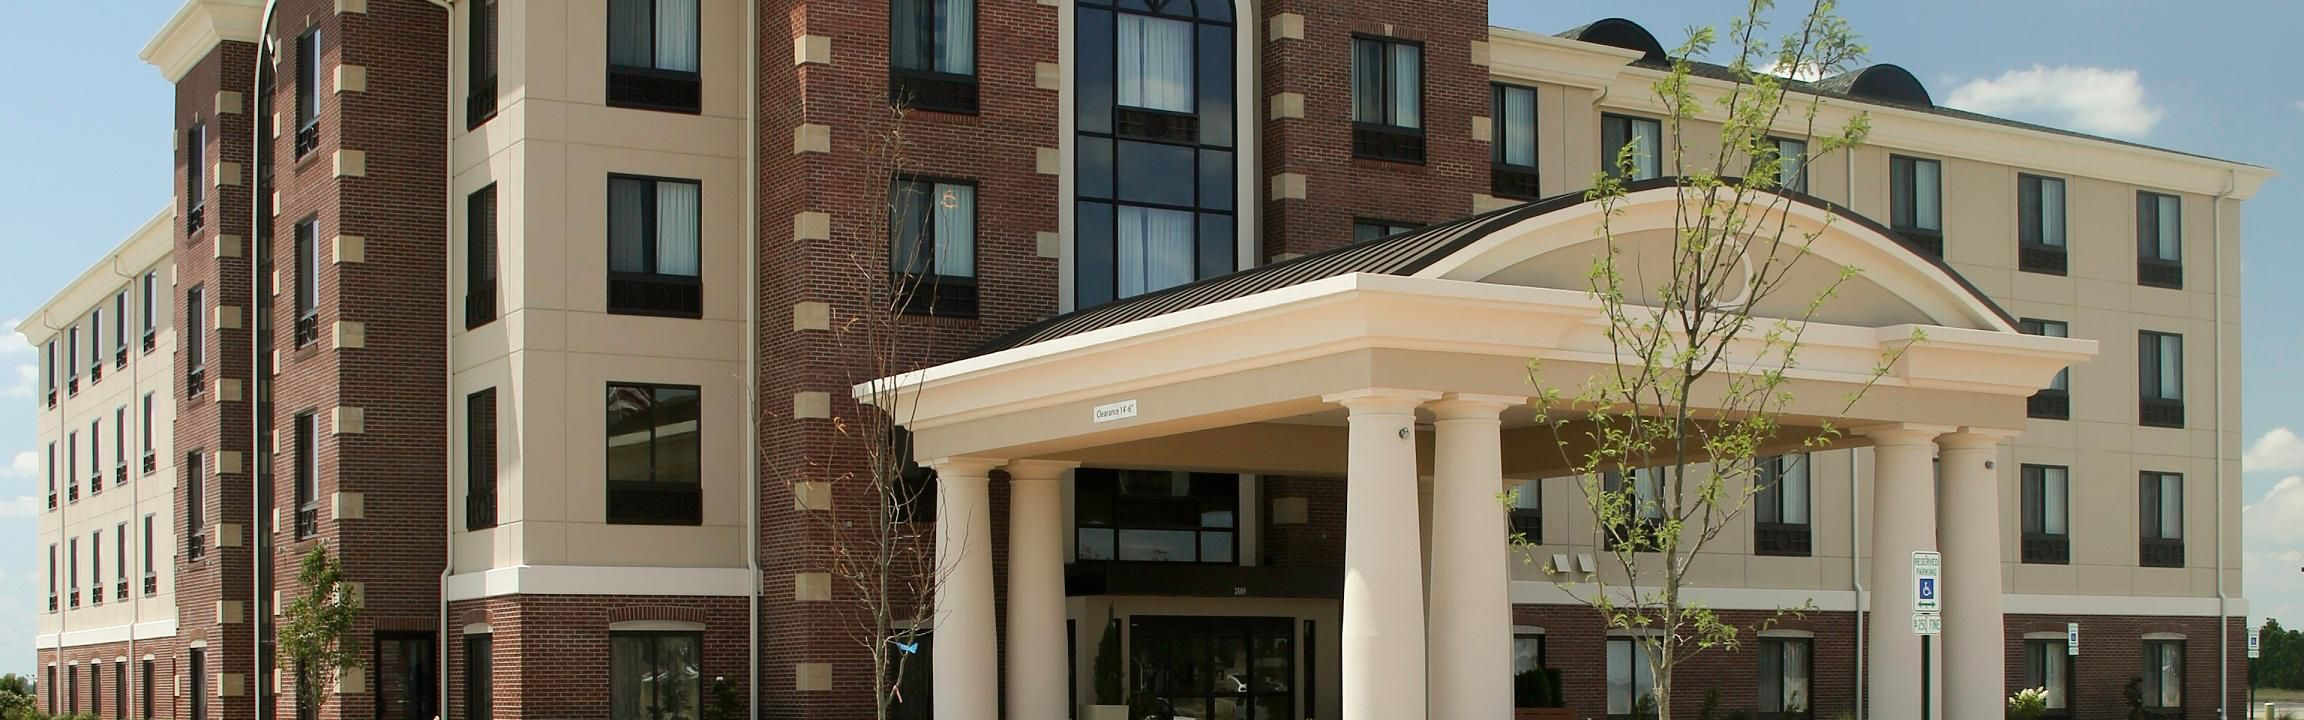 Latest Hotels Near Marion Nc With